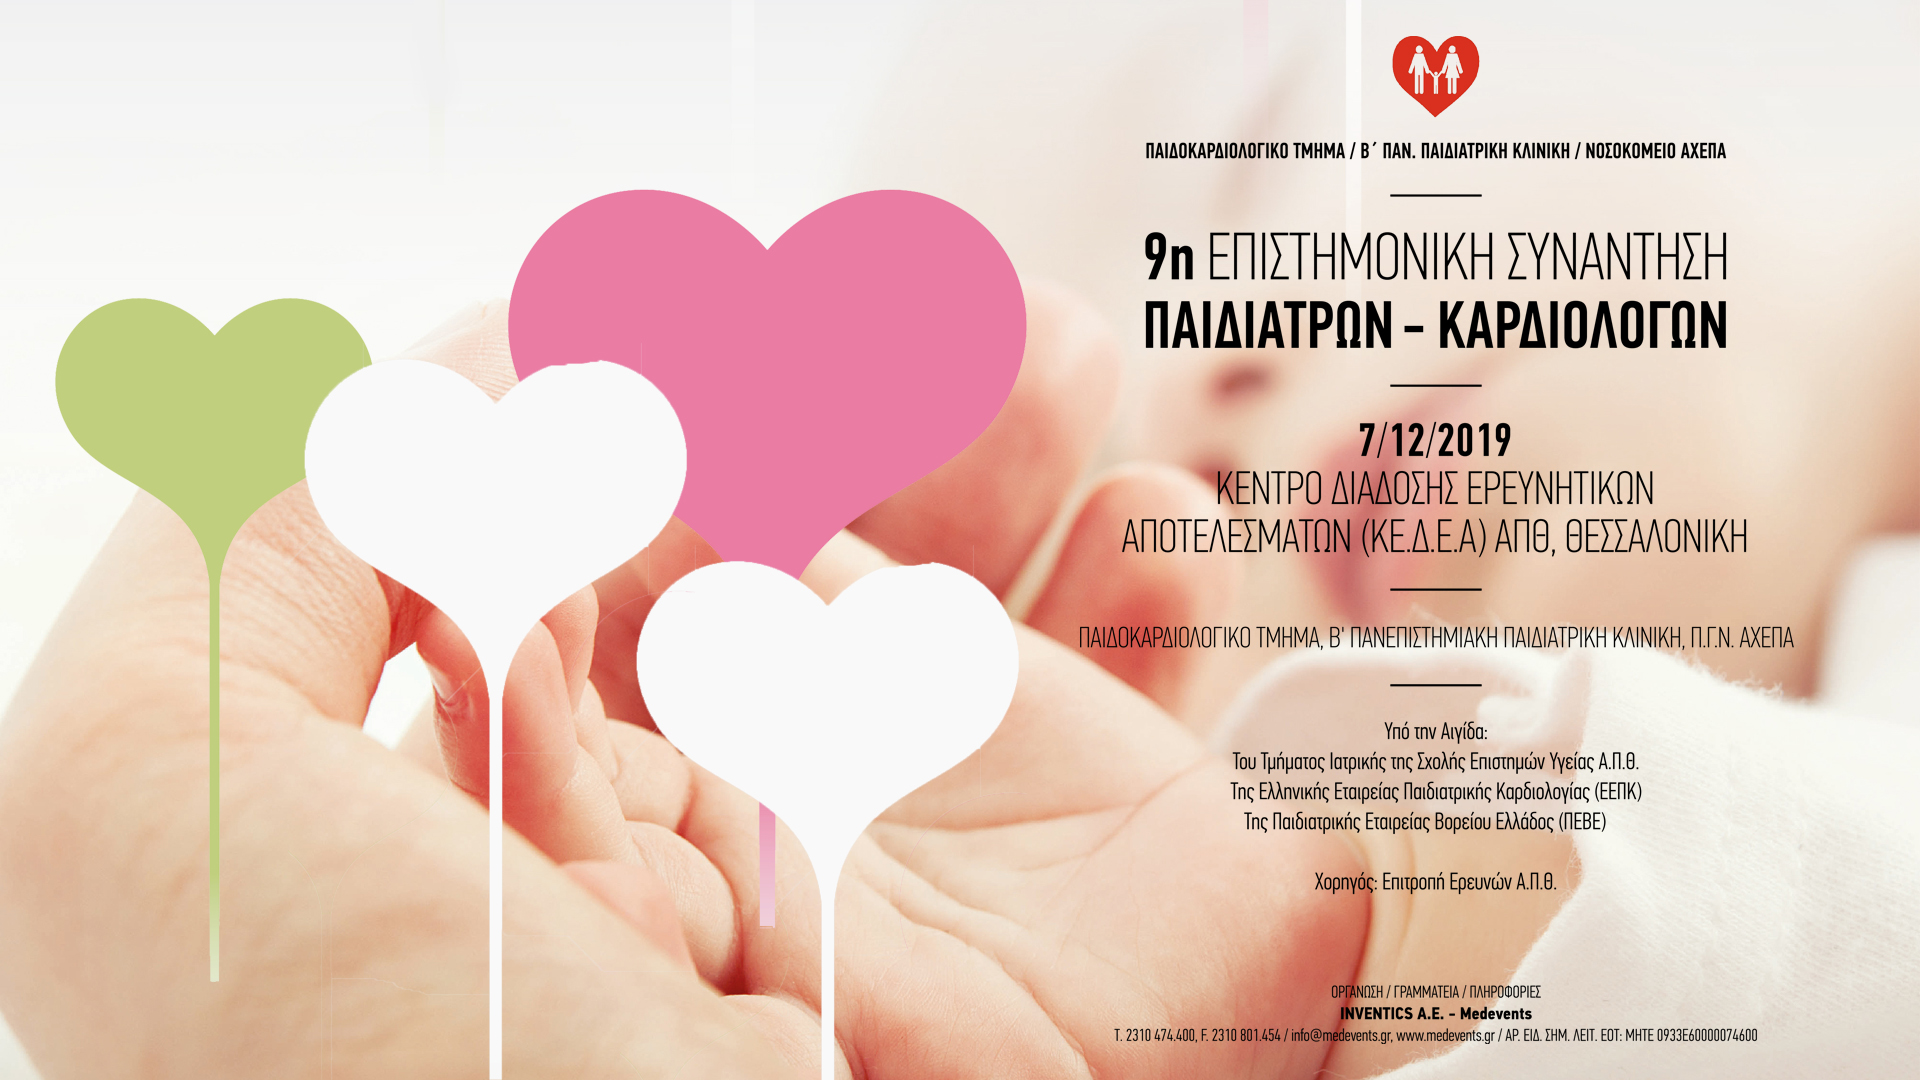 9th Scientific Meeting Pediatricians / Cardiologists